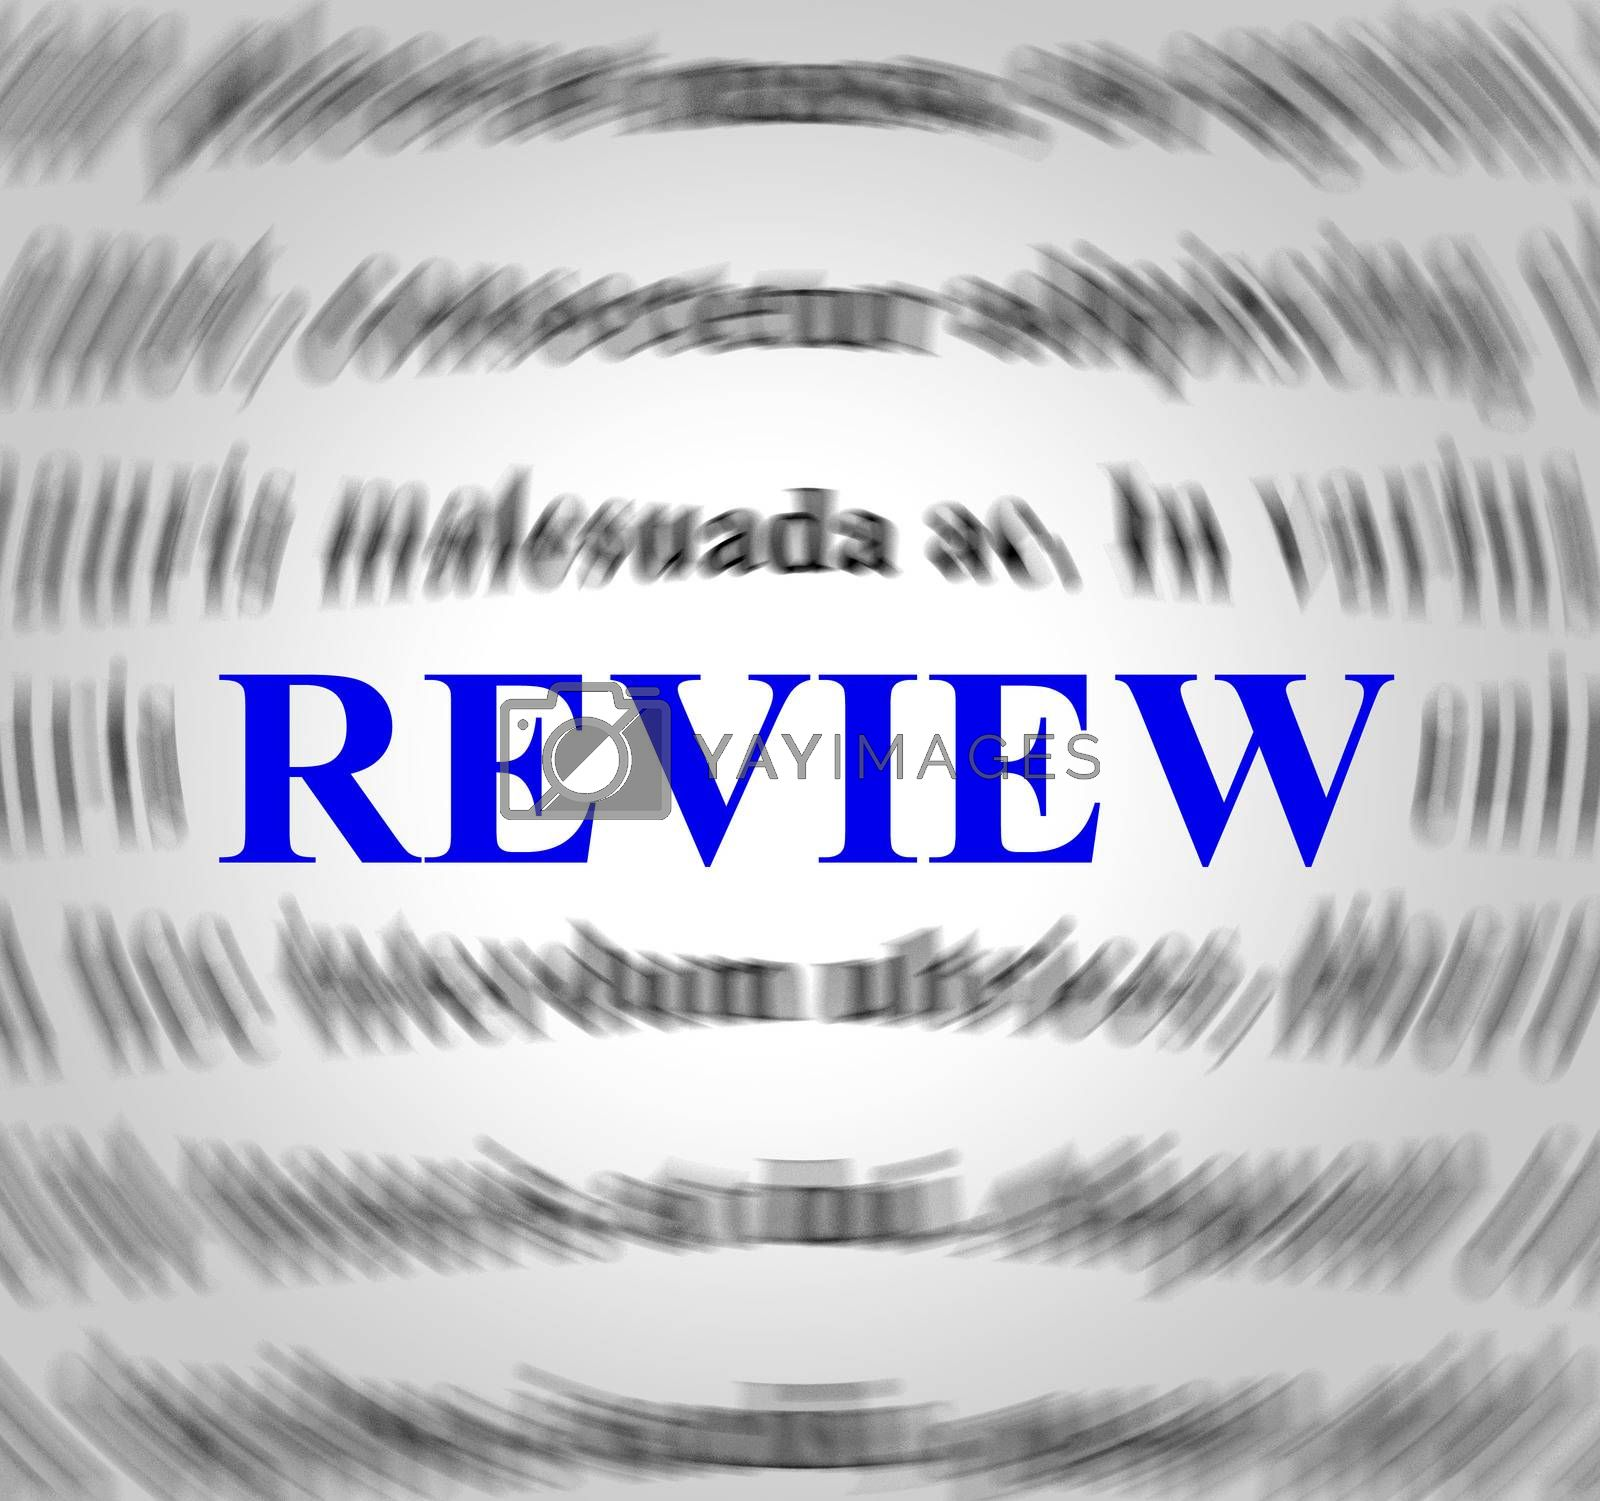 Review Definition Represents Evaluate Reviews And Inspection by stuartmiles